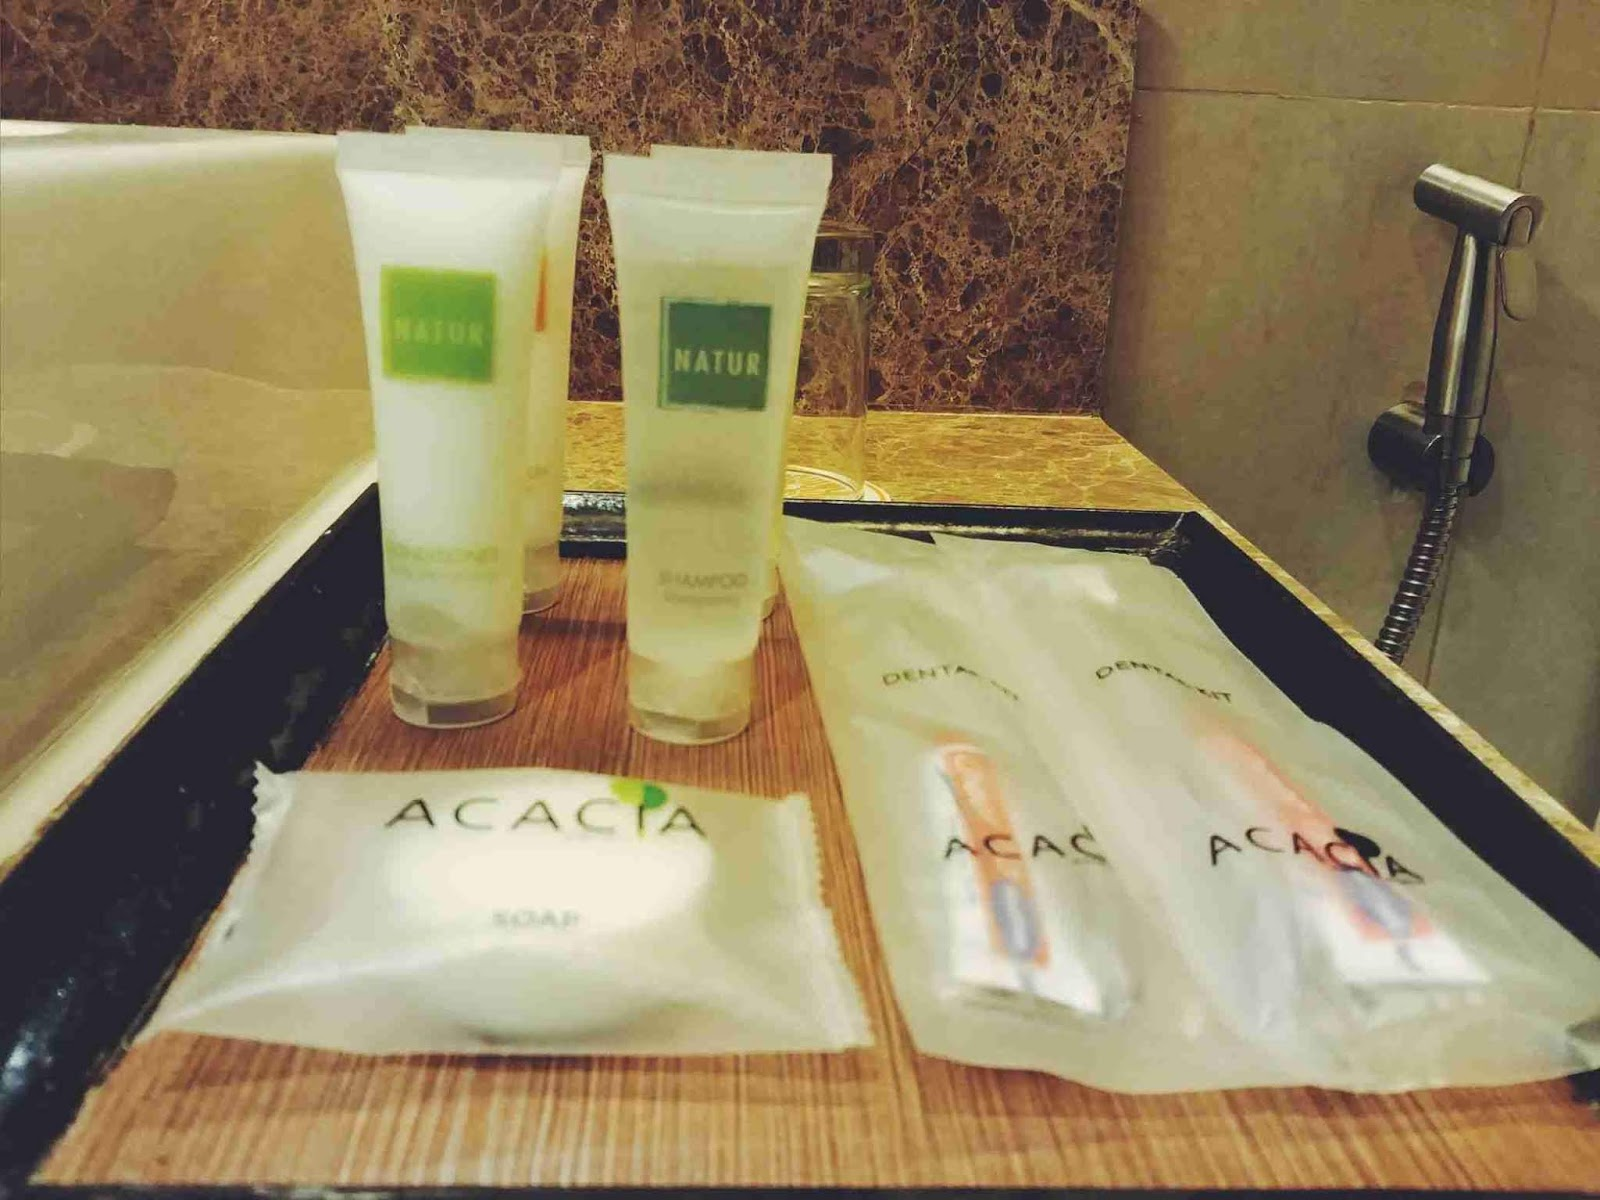 Natur toiletries at Acacia Hotel